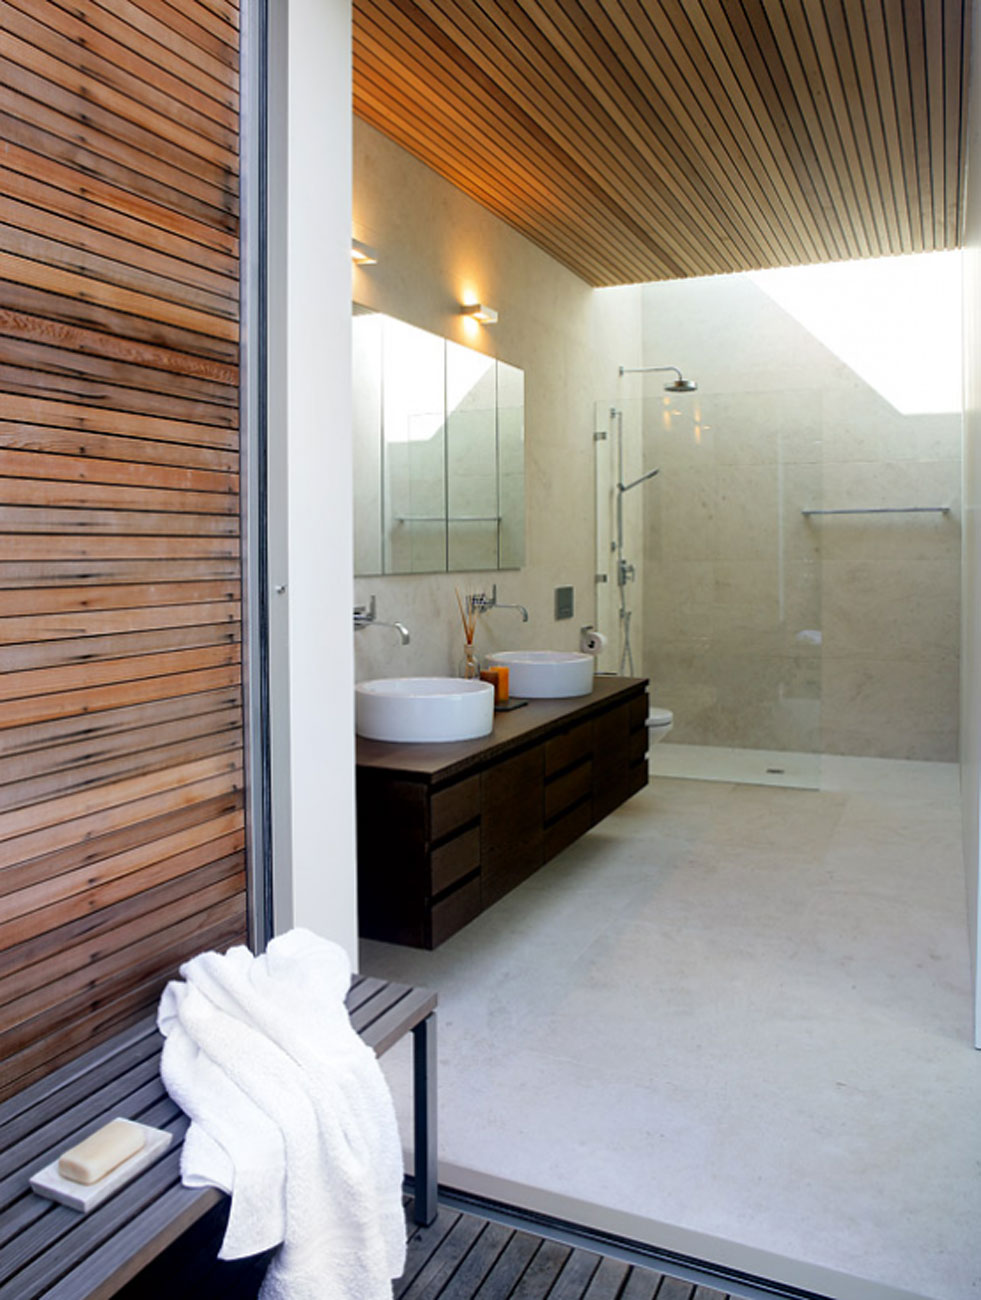 Glass Bungalow Design with Some Wooden Materials - Bathroom